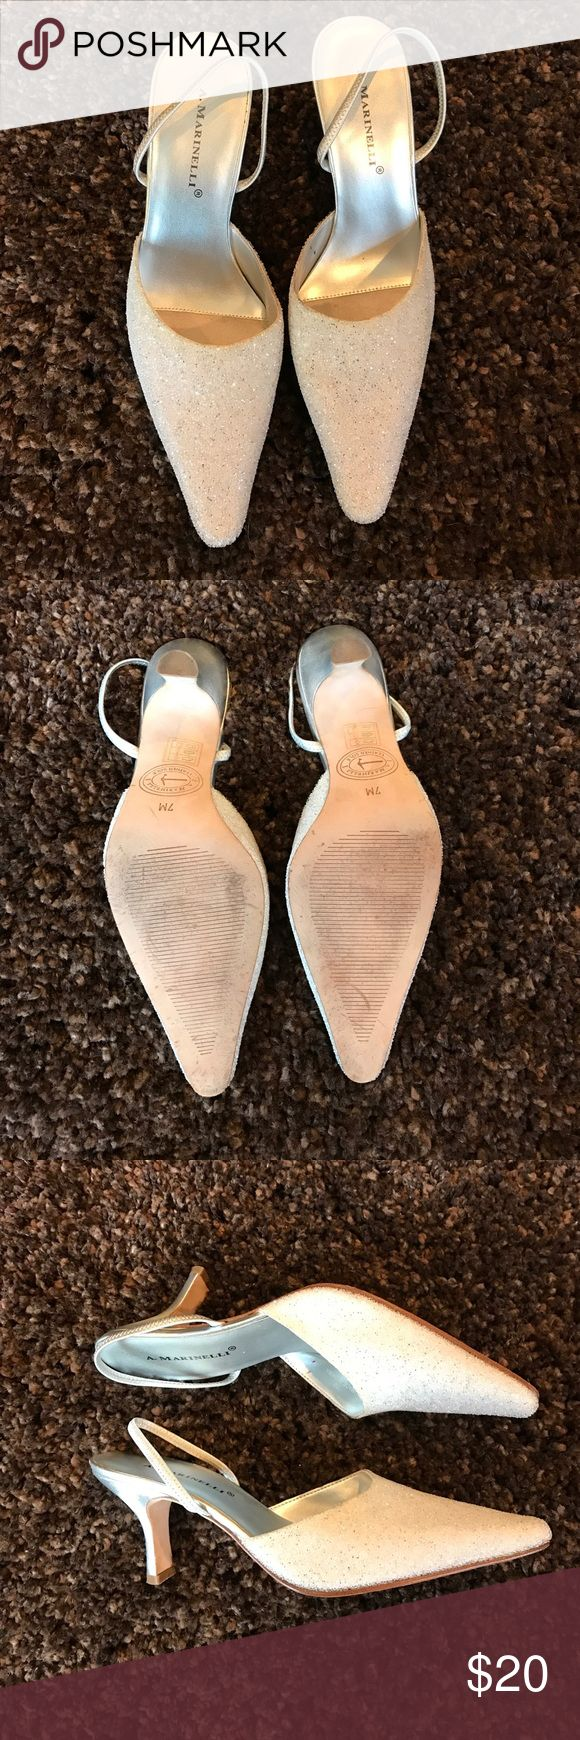 A. Marinelli heels Silver sparkly color. Size 7. 3 inch heels. Shoes Heels